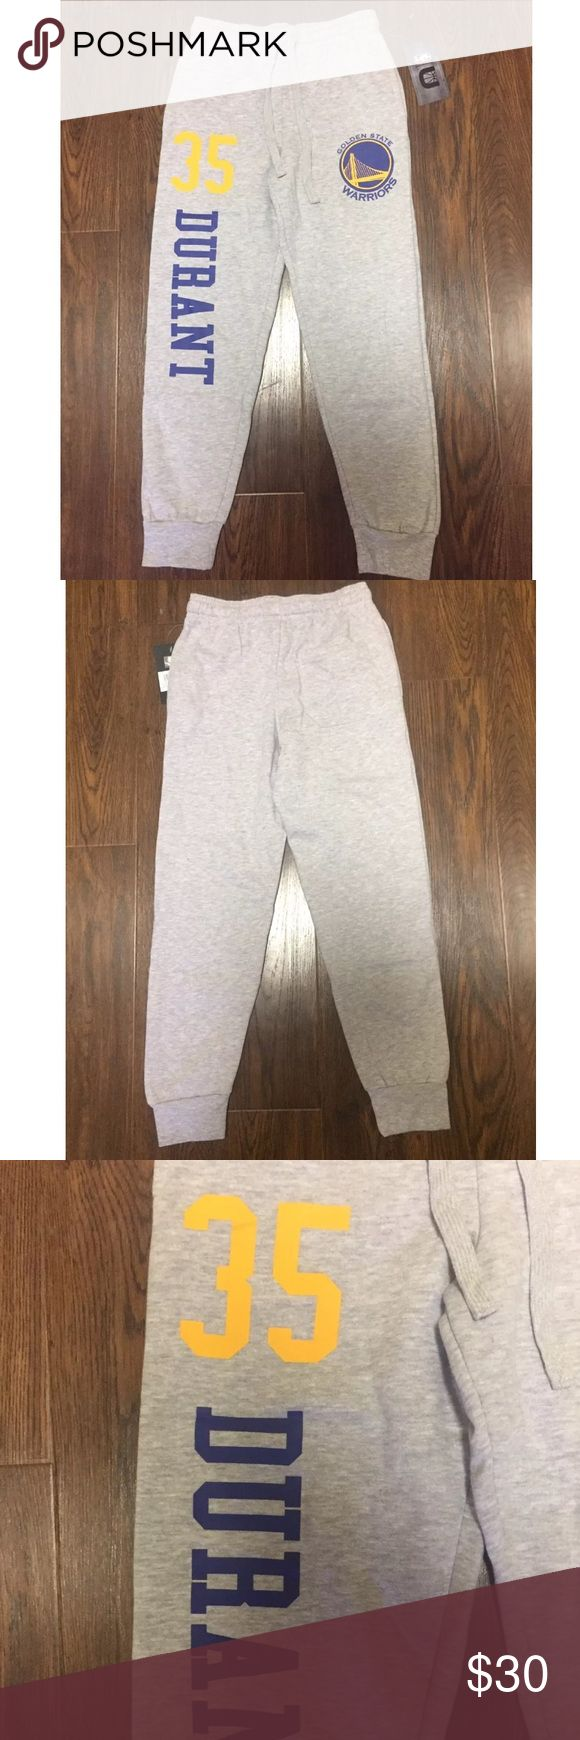 Golden State Warriors Kevin Durant Joggers XL Color : Gray   Size : Youth XL (18-20)   BRAND NEW WITH TAGS   Two front side pockets    One back pocket    Drawstring front closure    Elastic waistband    35 DURANT DOWN RIGHT LEG    WARRIORS LOGON ON LEFT LEG    COME FROM A SMOKE FREE HOME UNK Bottoms Sweatpants & Joggers